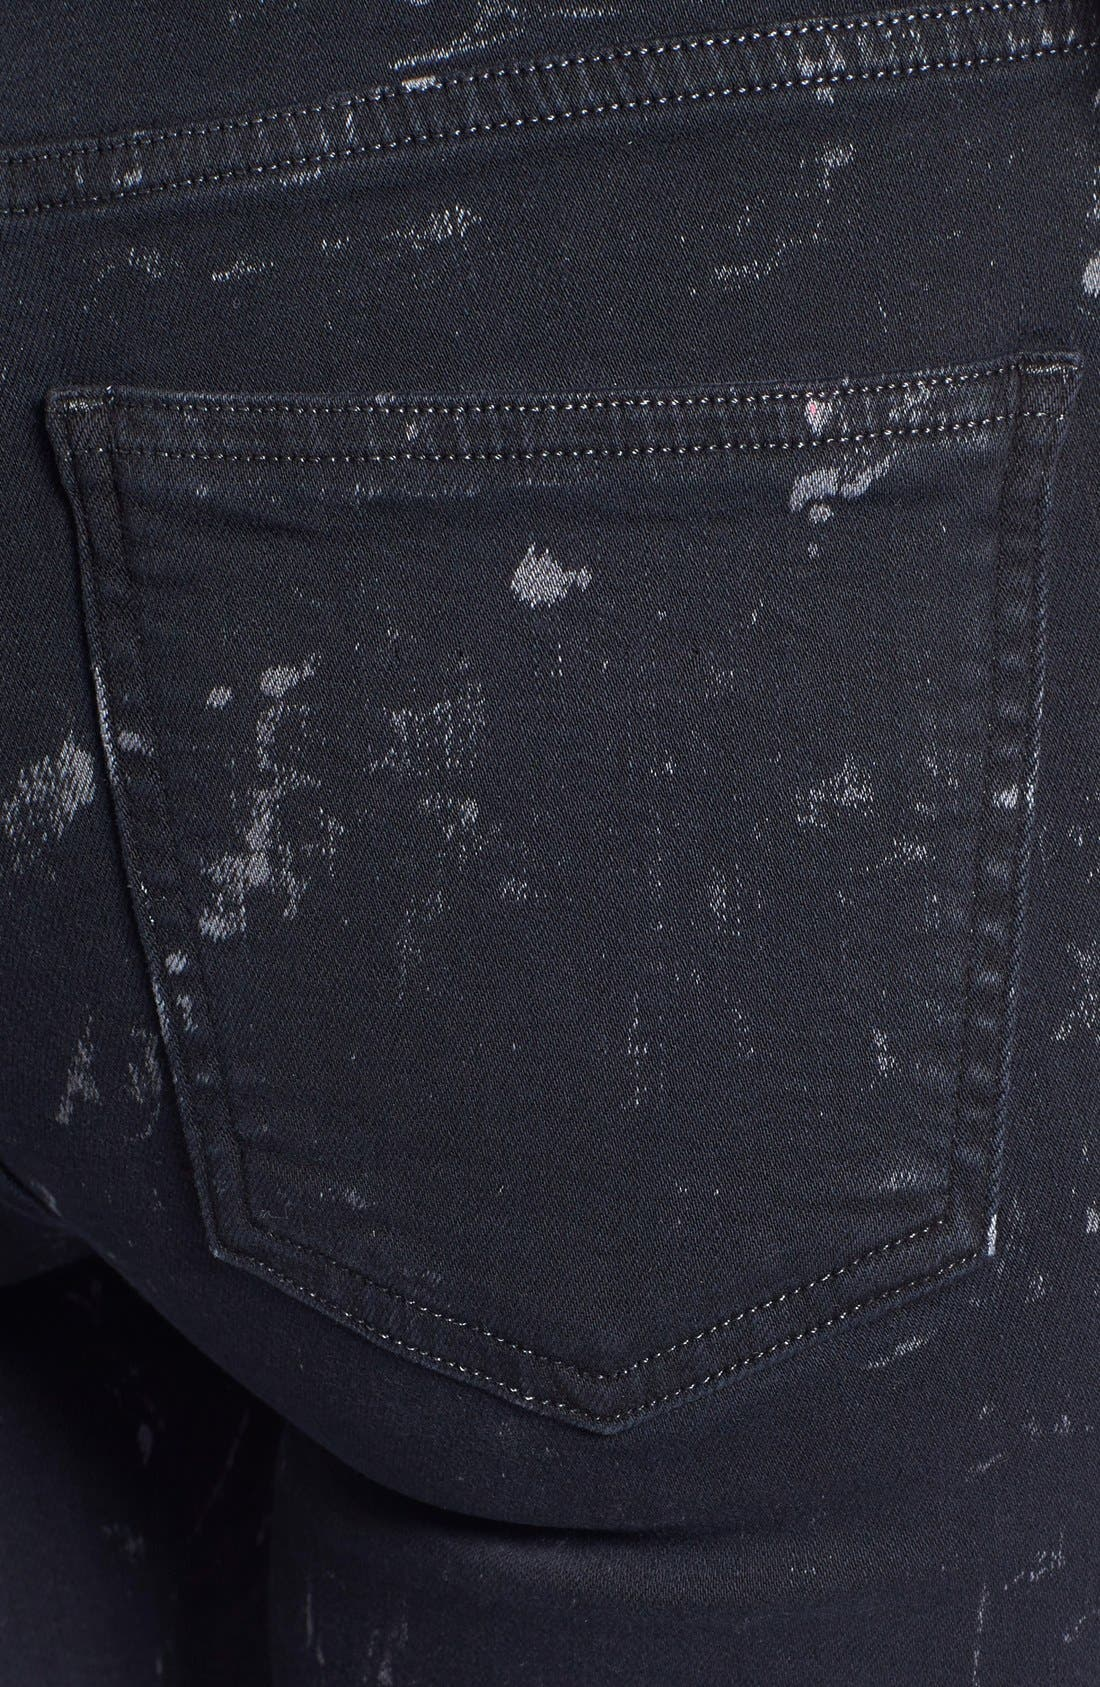 Alternate Image 3  - Citizens of Humanity 'Rocket' Skinny Jeans (Starry Black)